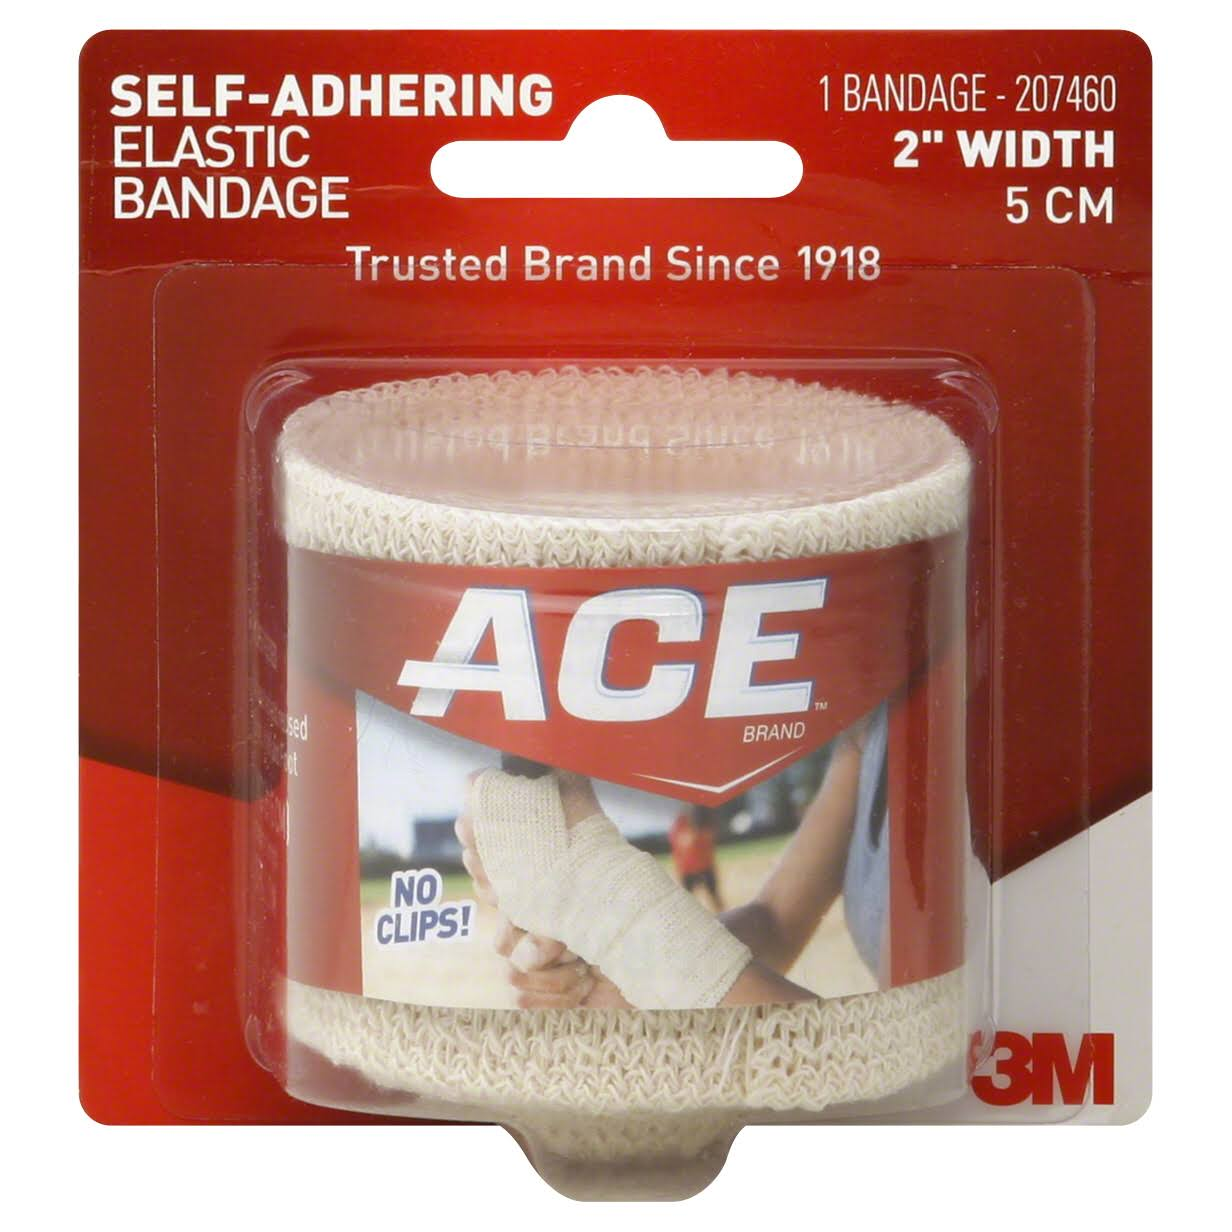 3M Ace Self-Adhering Elastic Bandage - 5cm